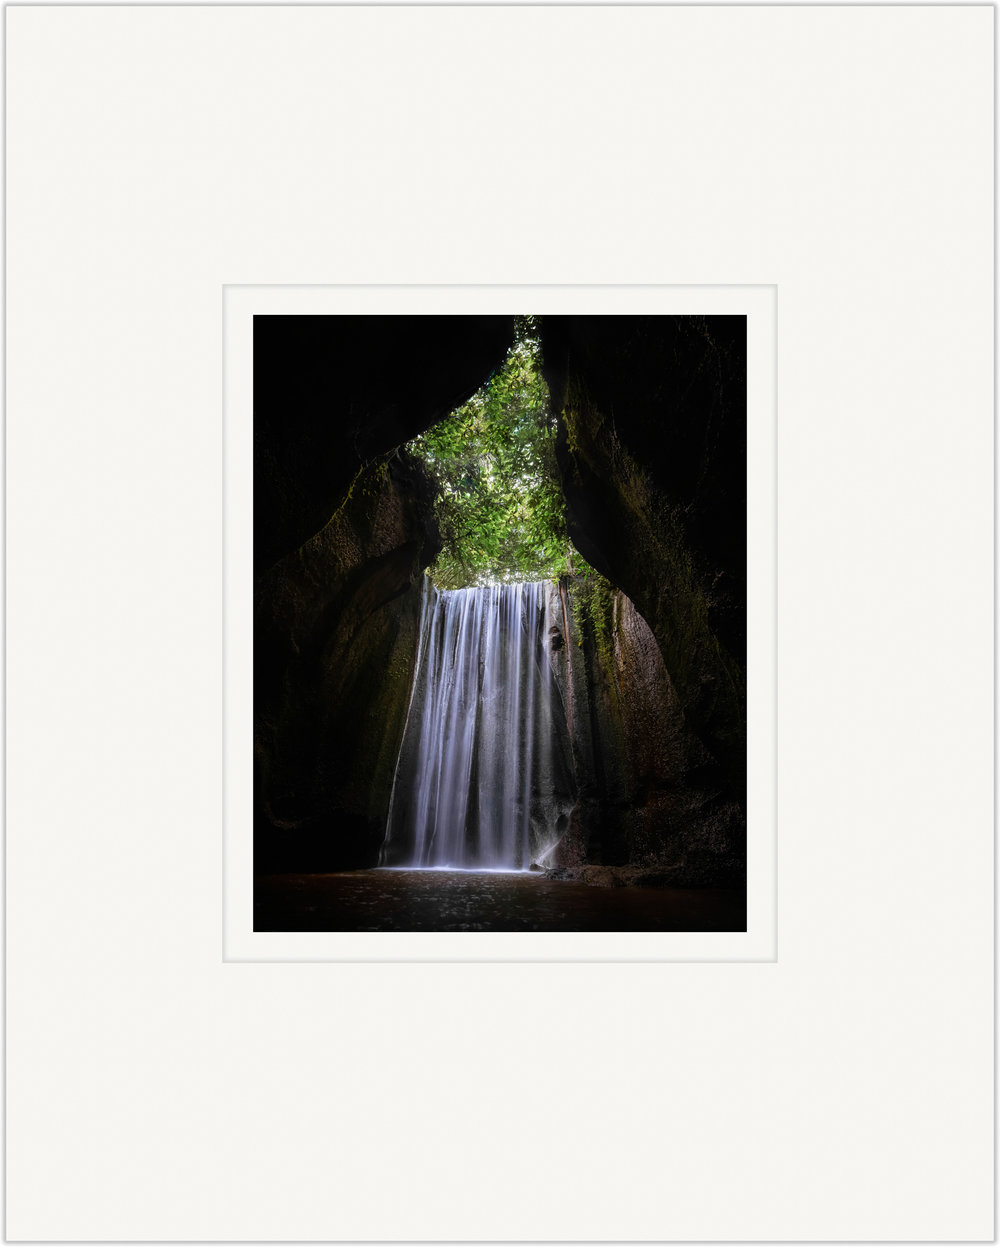 Untitled (Tukad Cepung)  20cm x 25cm Photo Paper Limited Edition of 99   IDR 799,000